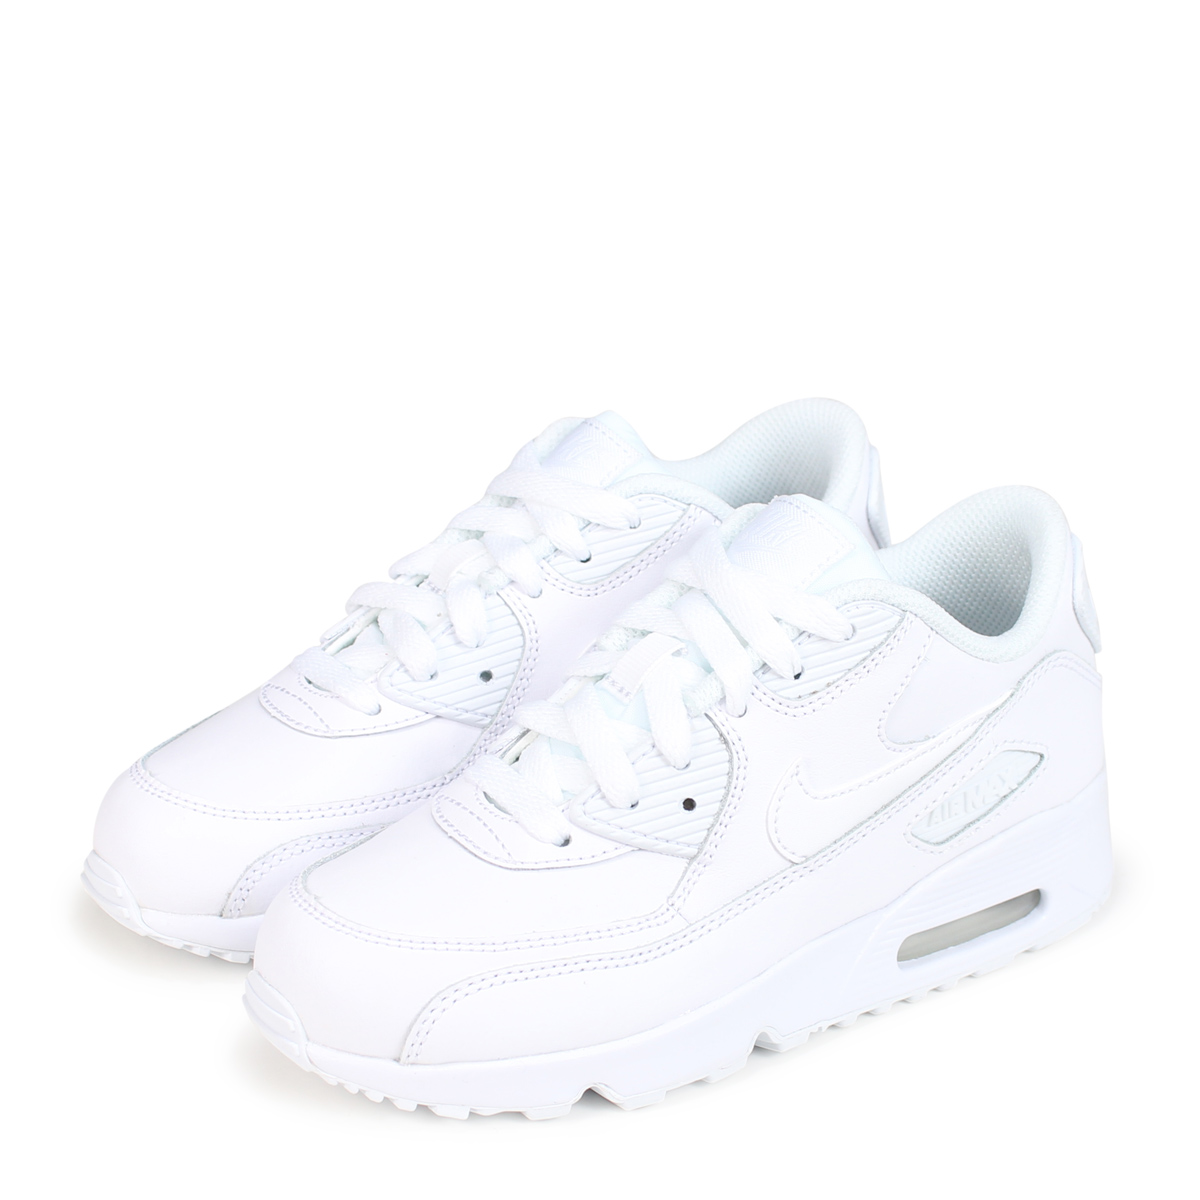 257c313ed7 Nike NIKE Air Max 90 kids sneakers AIR MAX 90 LEATHER PS 833,414-100 white  ...